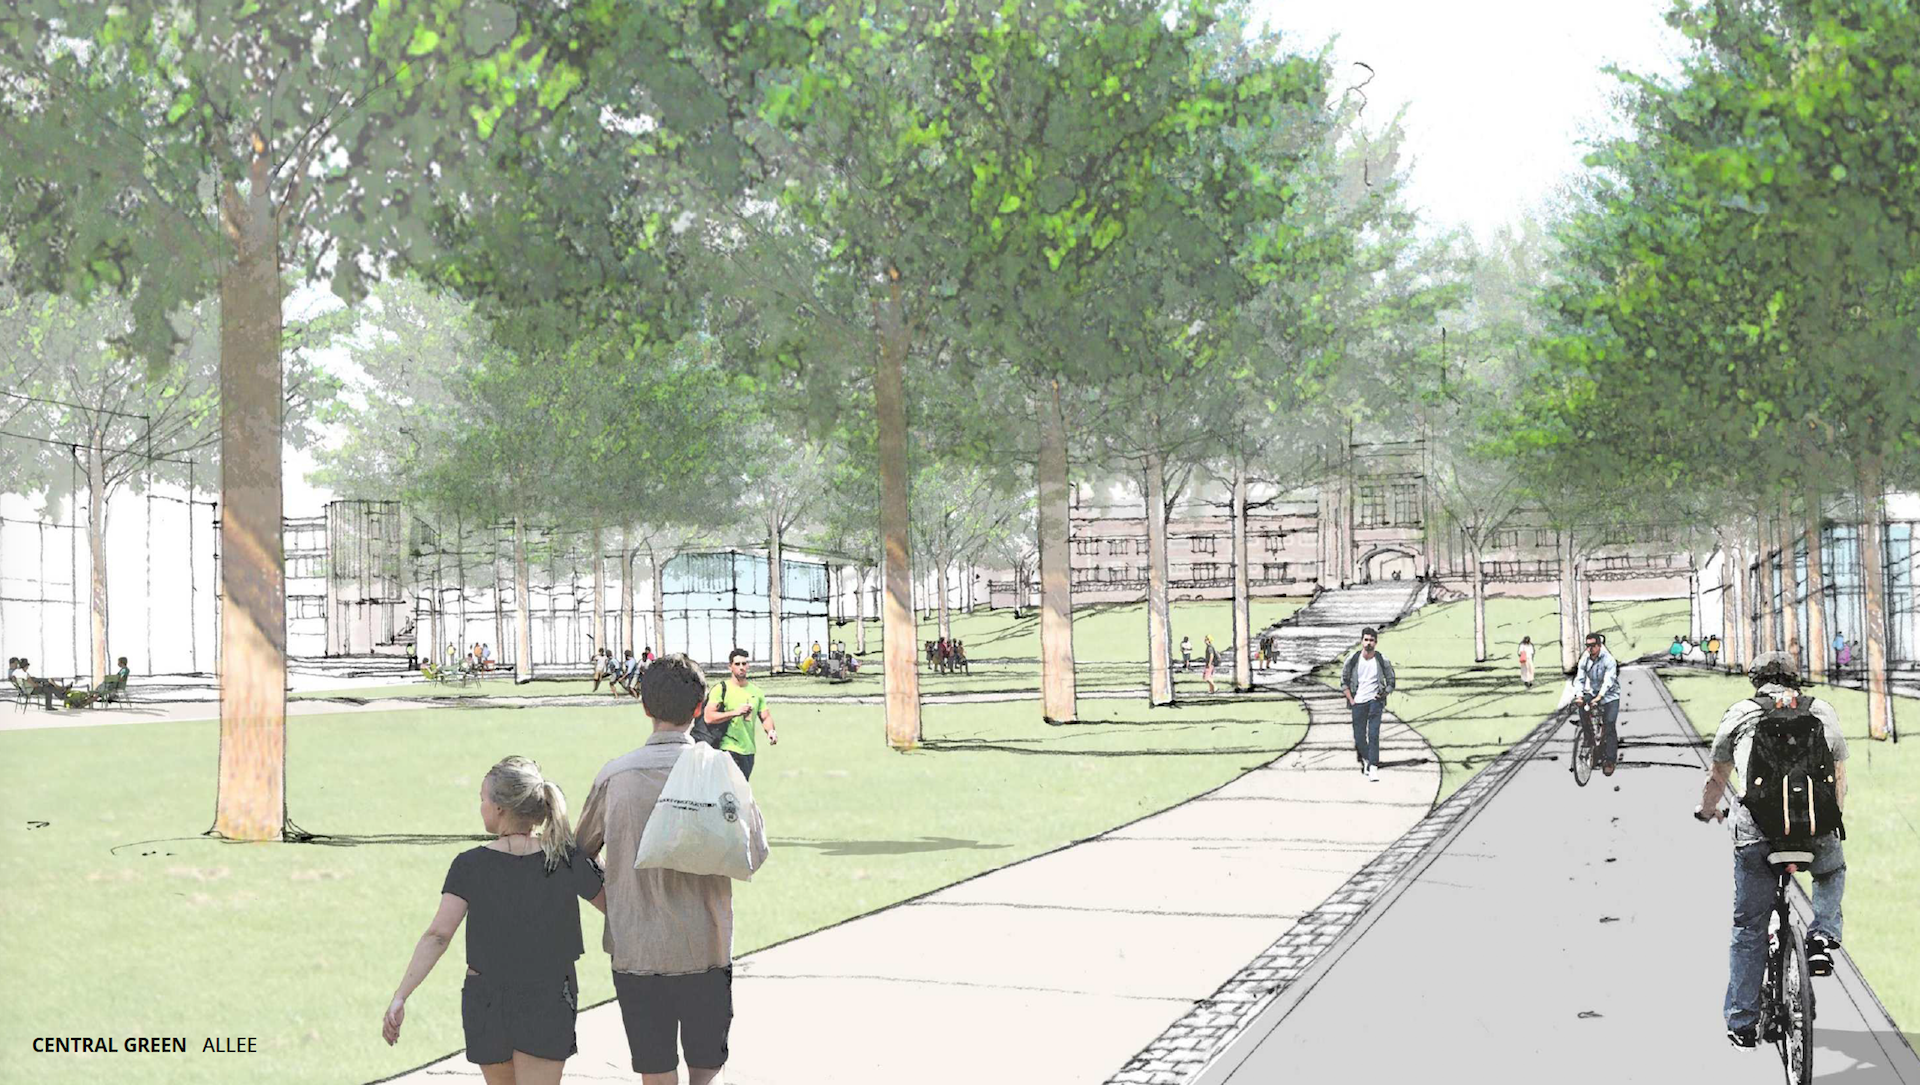 Rendering showing pedestrian and bike corridors on the campus of Washington University in St. Louis